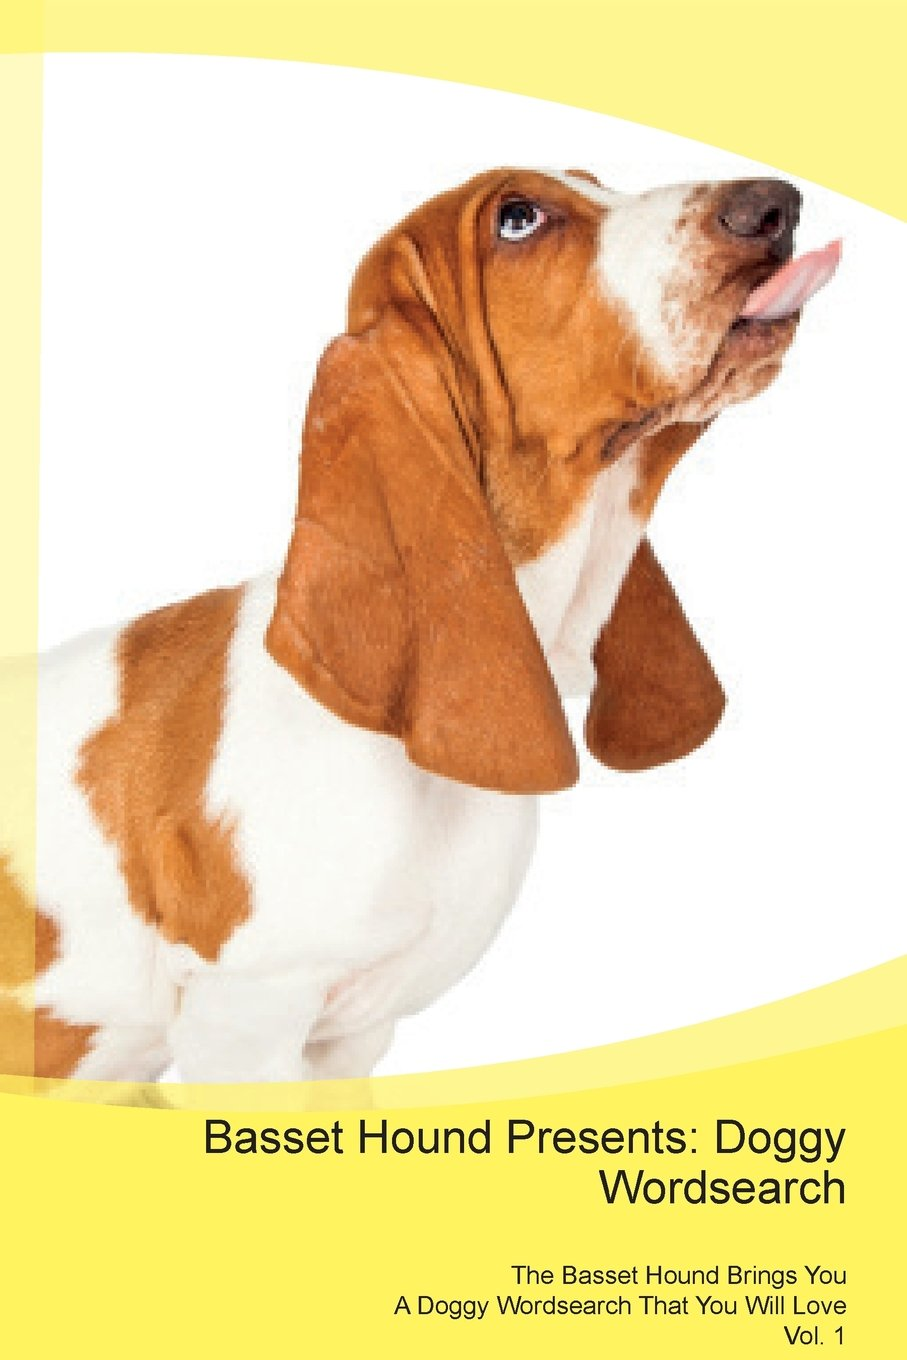 Basset Hound Presents: Doggy Wordsearch the Basset Hound Brings You a Doggy Wordsearch That You Will Love Vol. 1 pdf